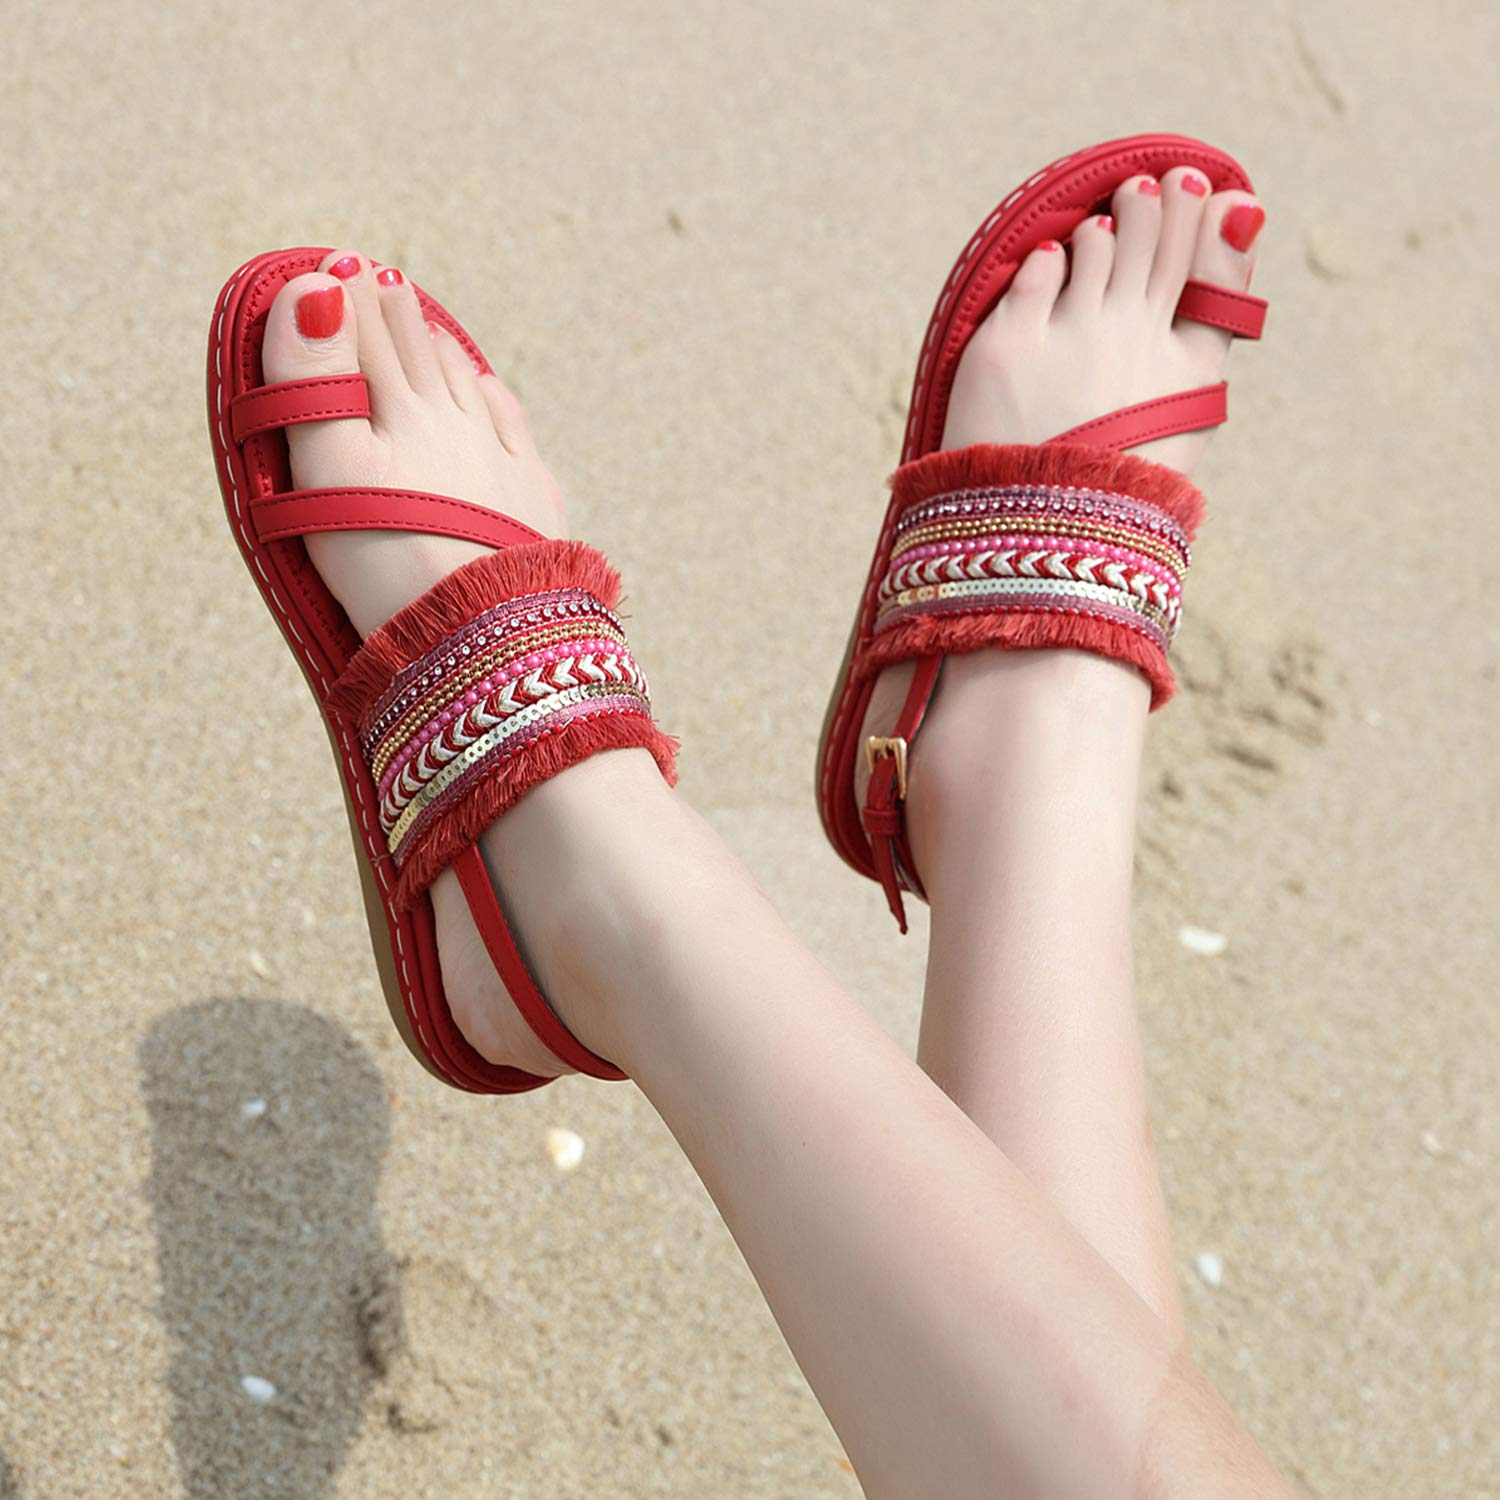 Womens Summer Boho Rhinestone Flat Sandals with Ankle Strap Toe Post Flip Flop Shoes